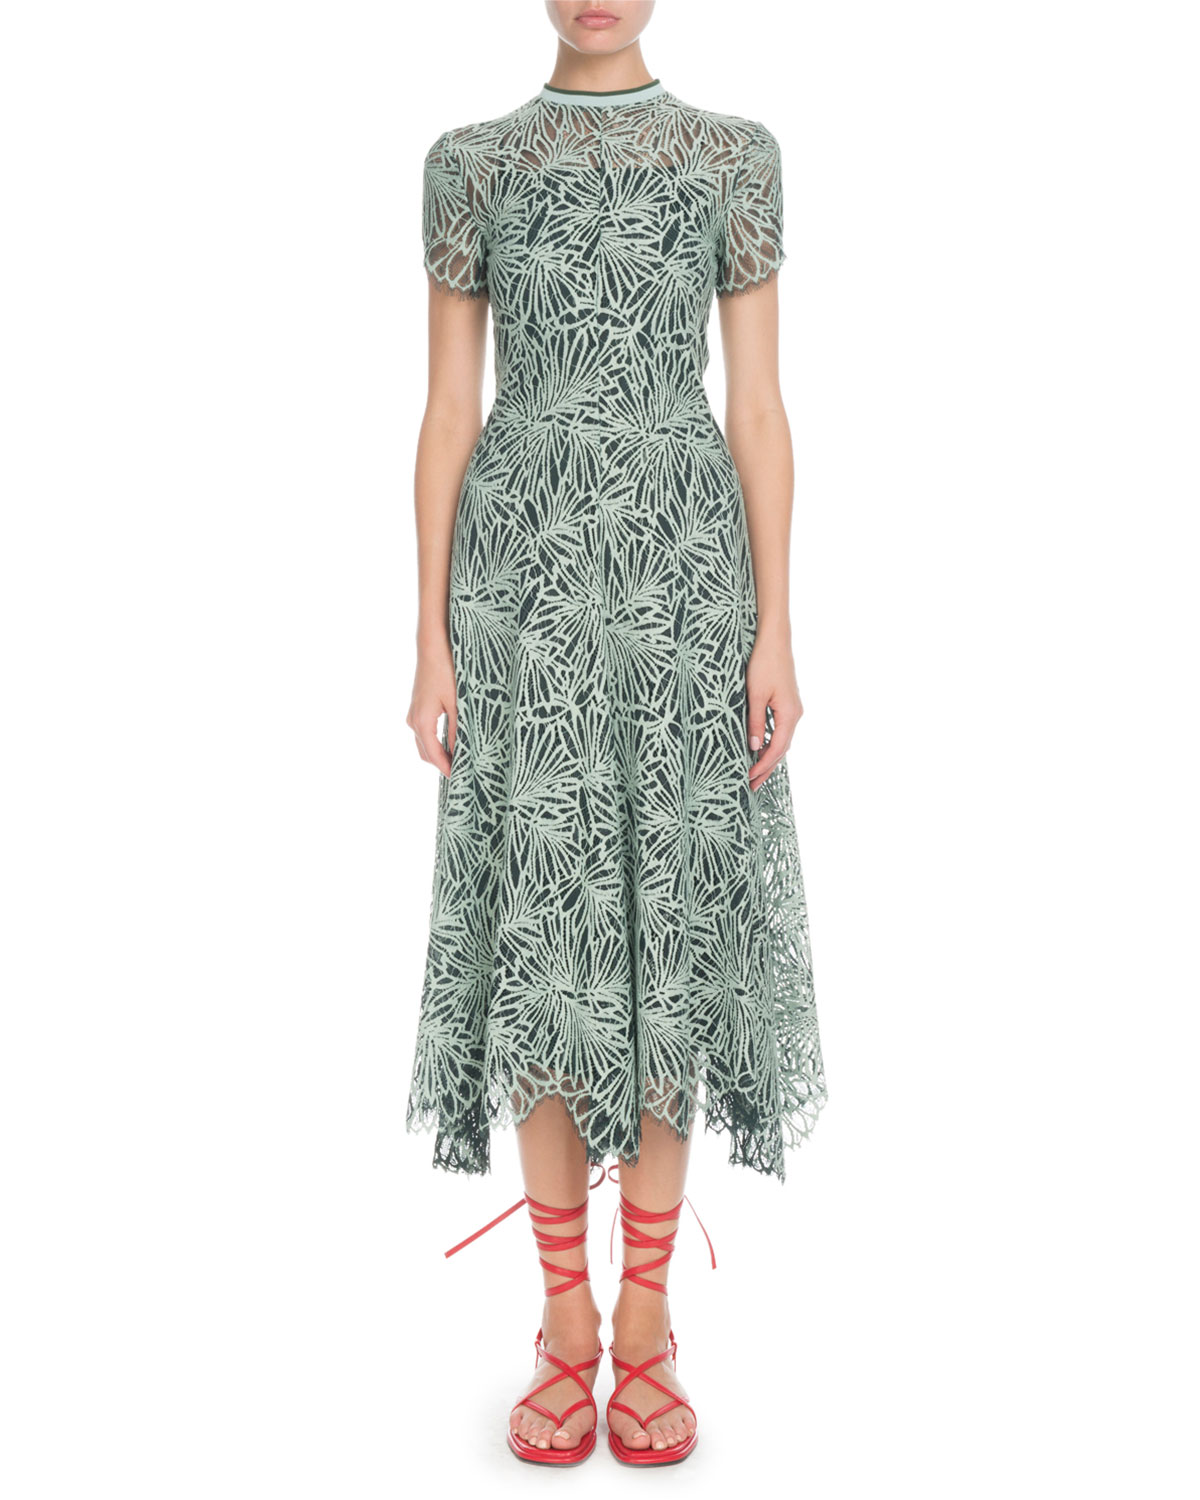 Mock-Neck Allover Printed Lace Midi Dress in Spearmint